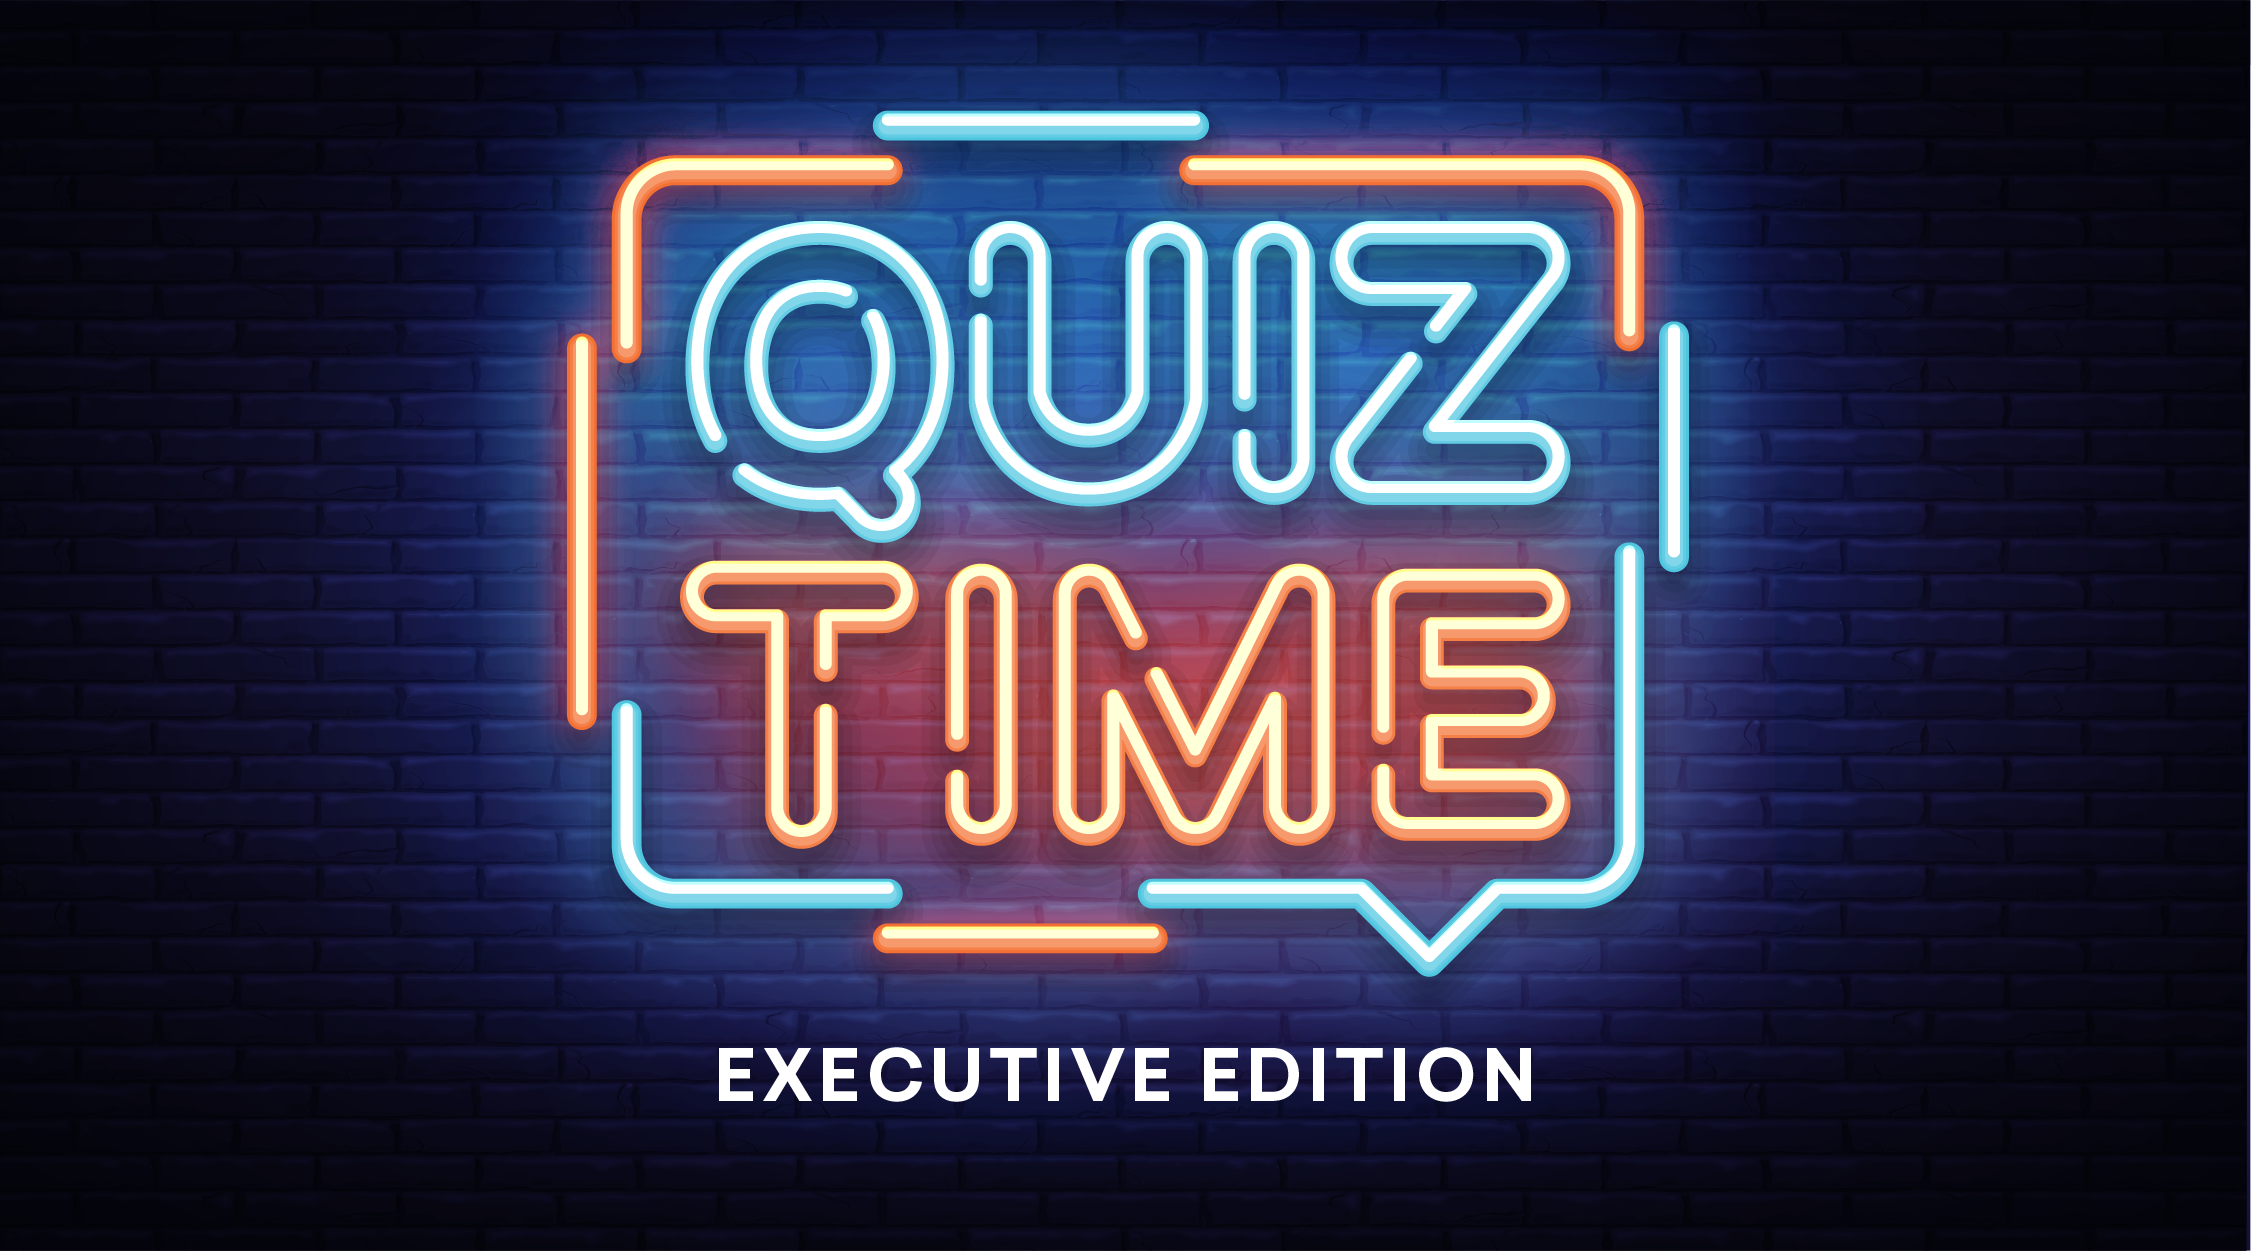 The BI solutions intelligence quiz for executives